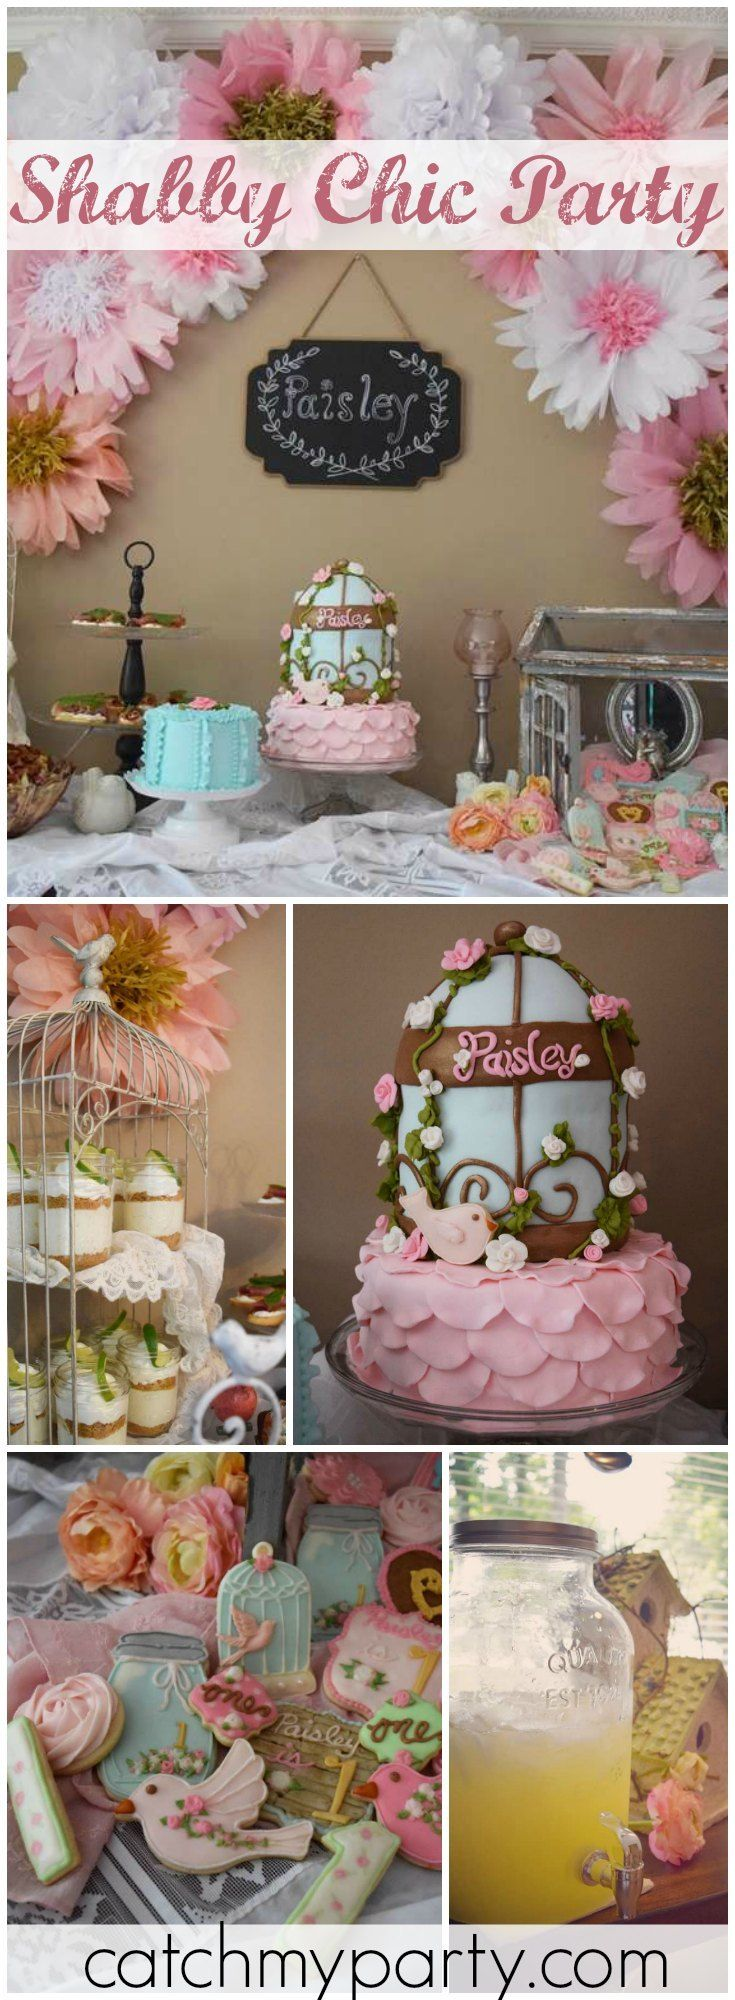 This beautiful shabby chic party celebrates a first birthday! See more party ideas at Catchmyparty.com!